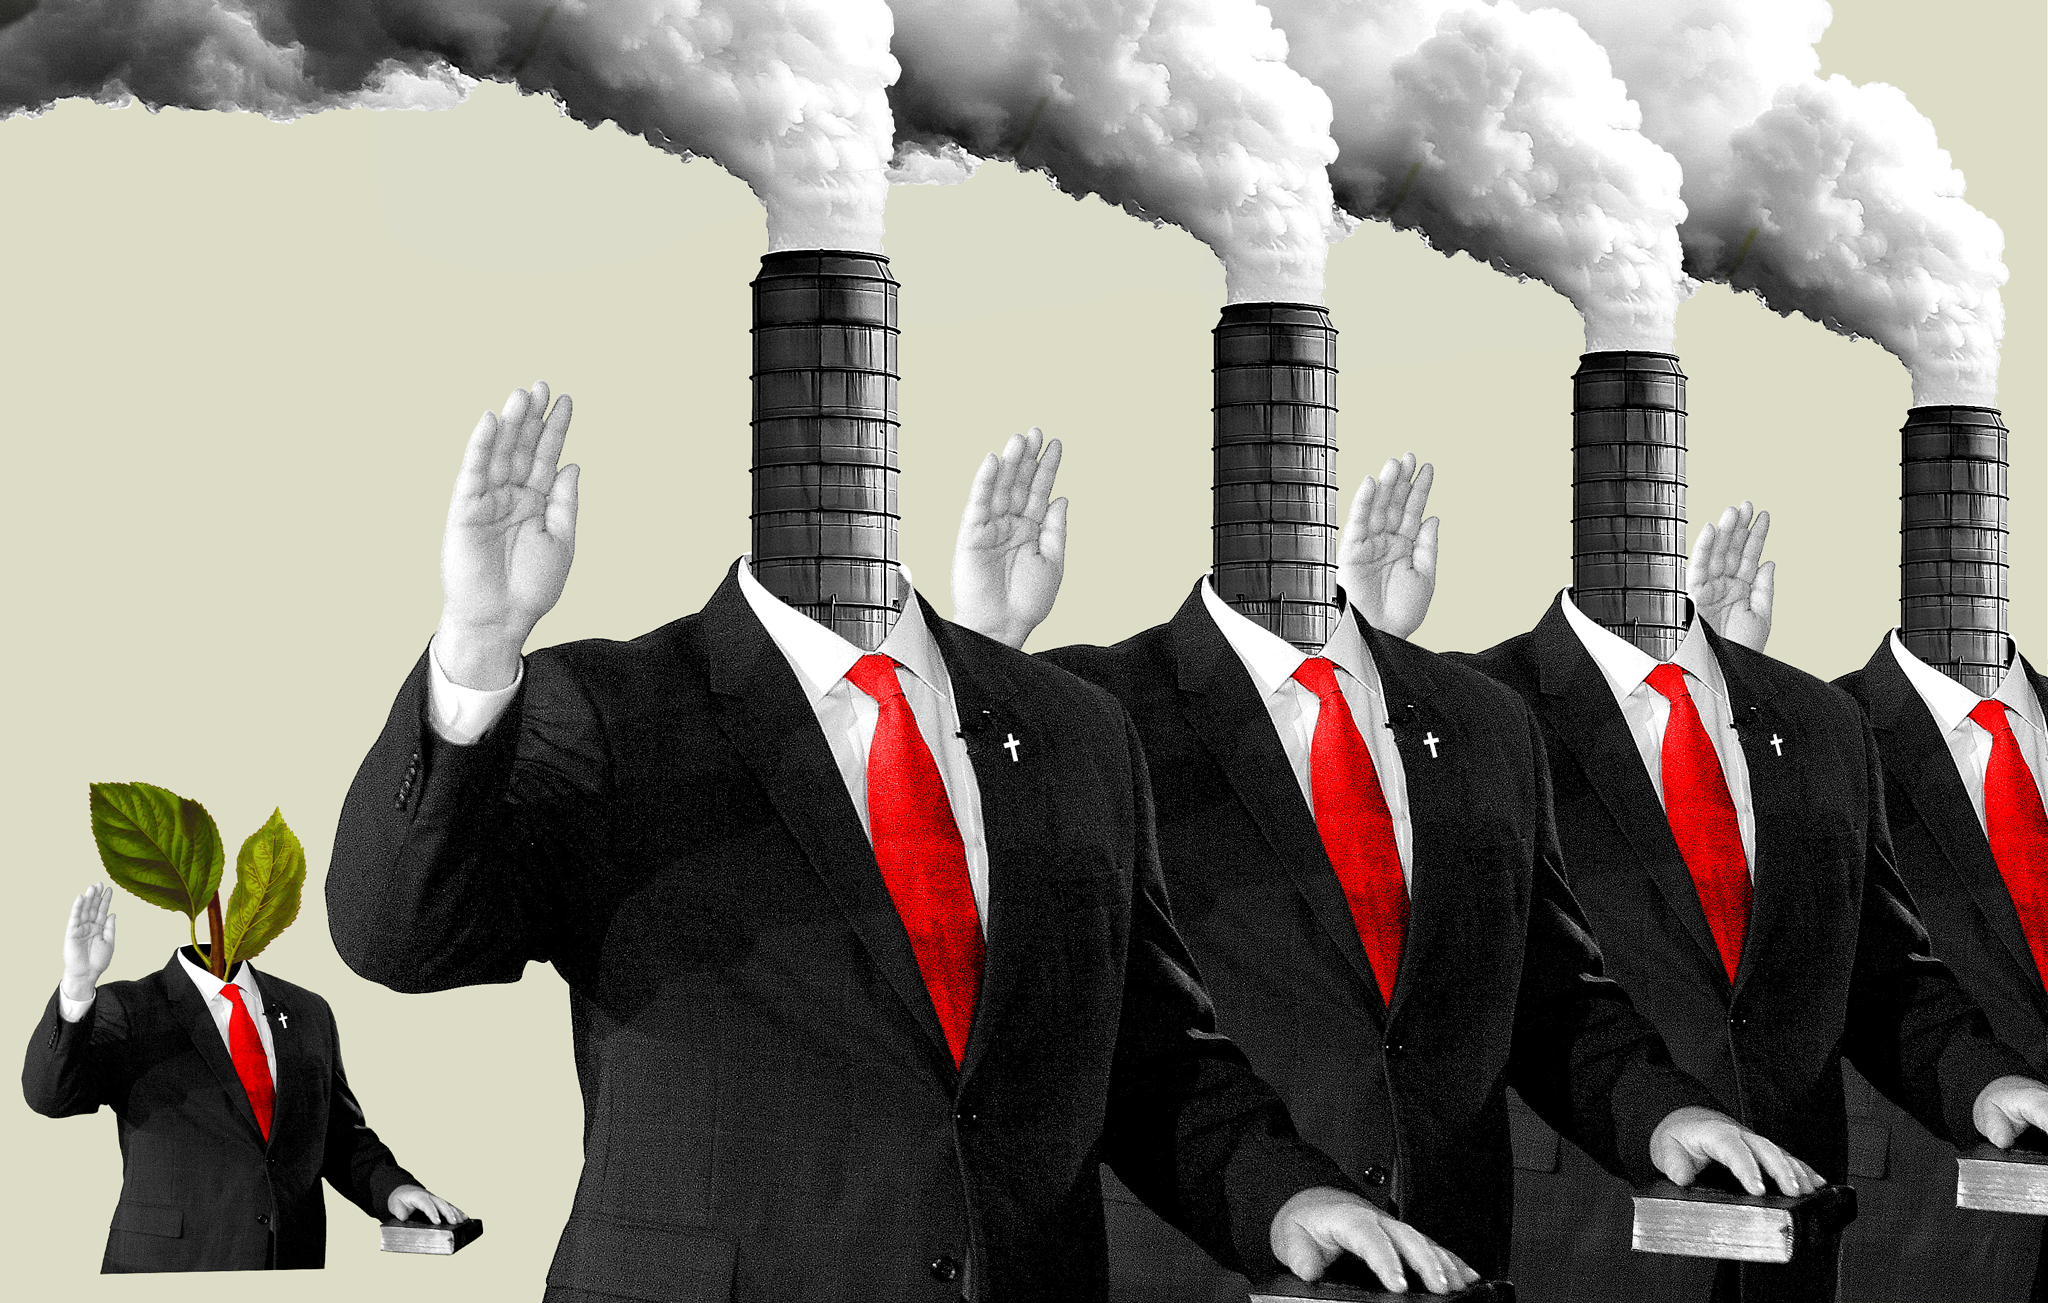 coal-lobbyists-take-over-climate-action.png